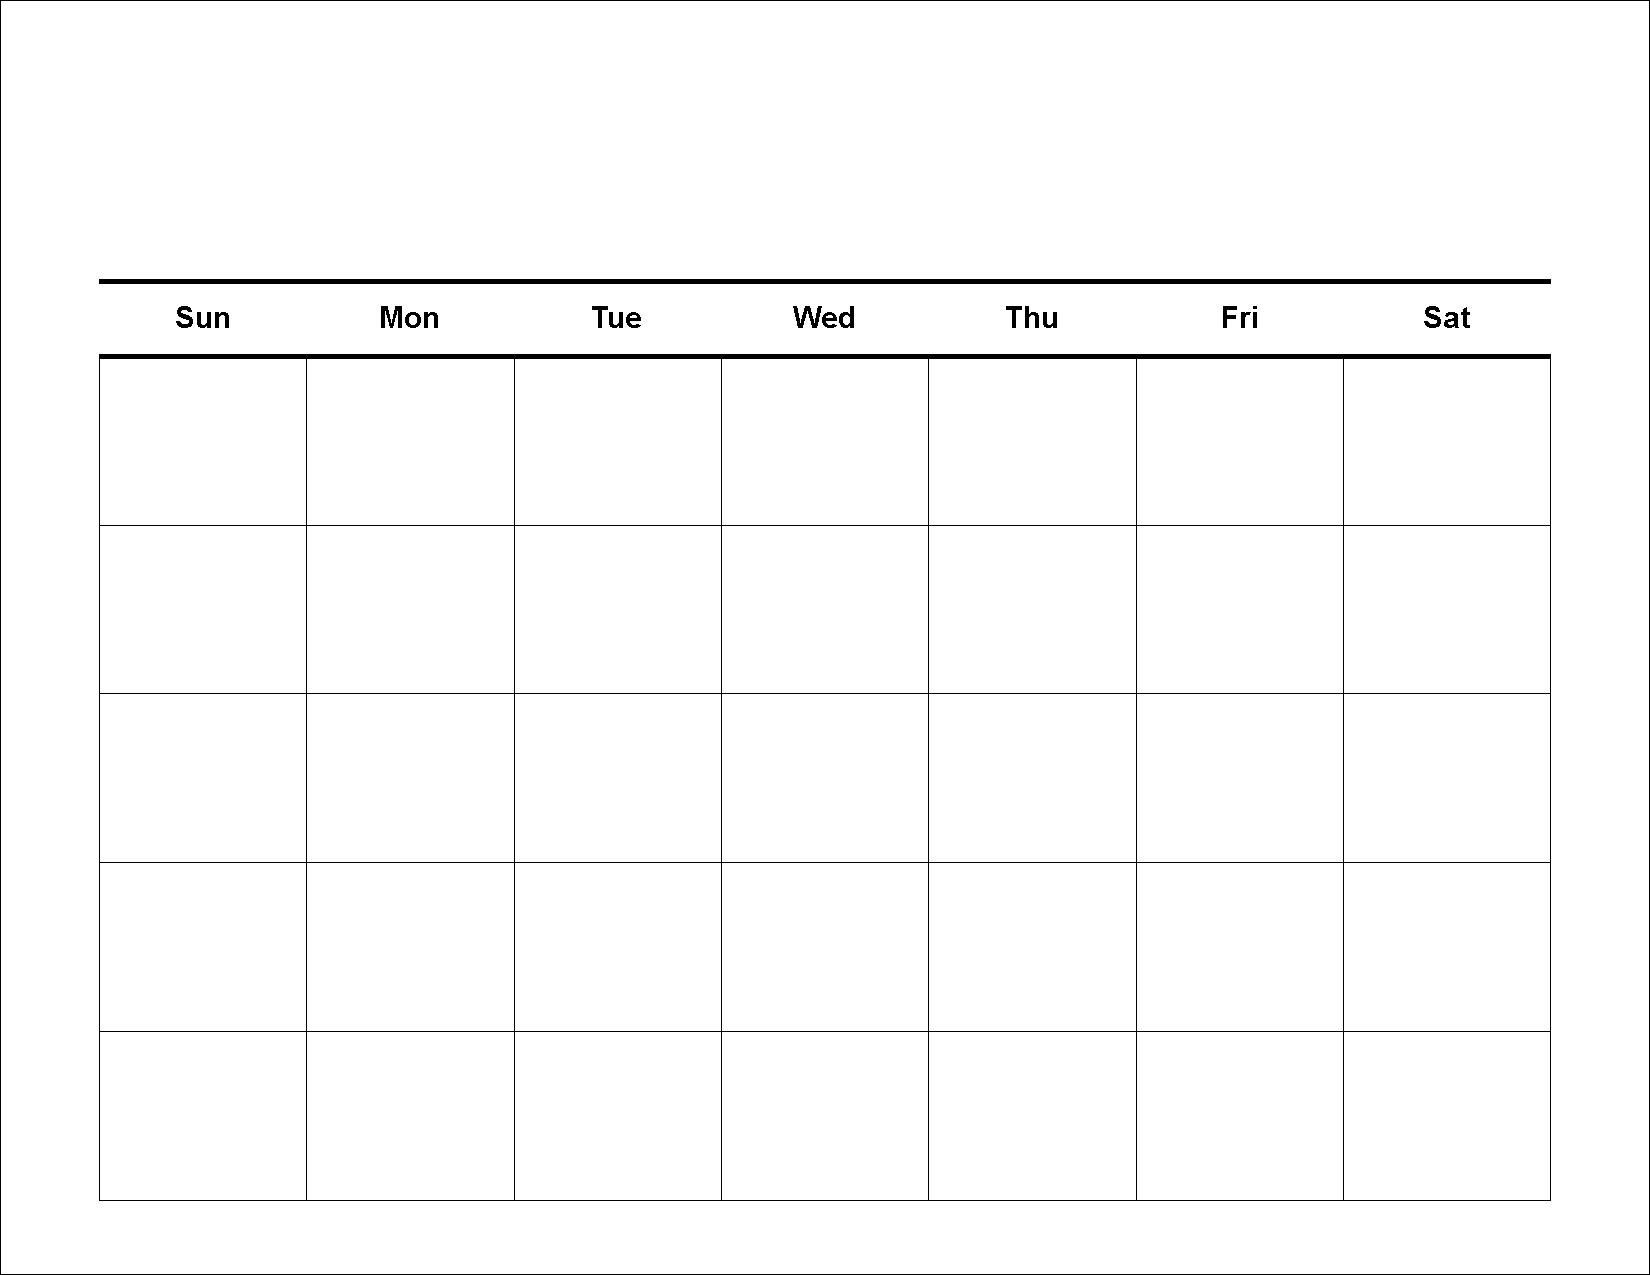 30-Day-Calendar-Template-Printable-Large intended for Blank 30 Day Month Calendar